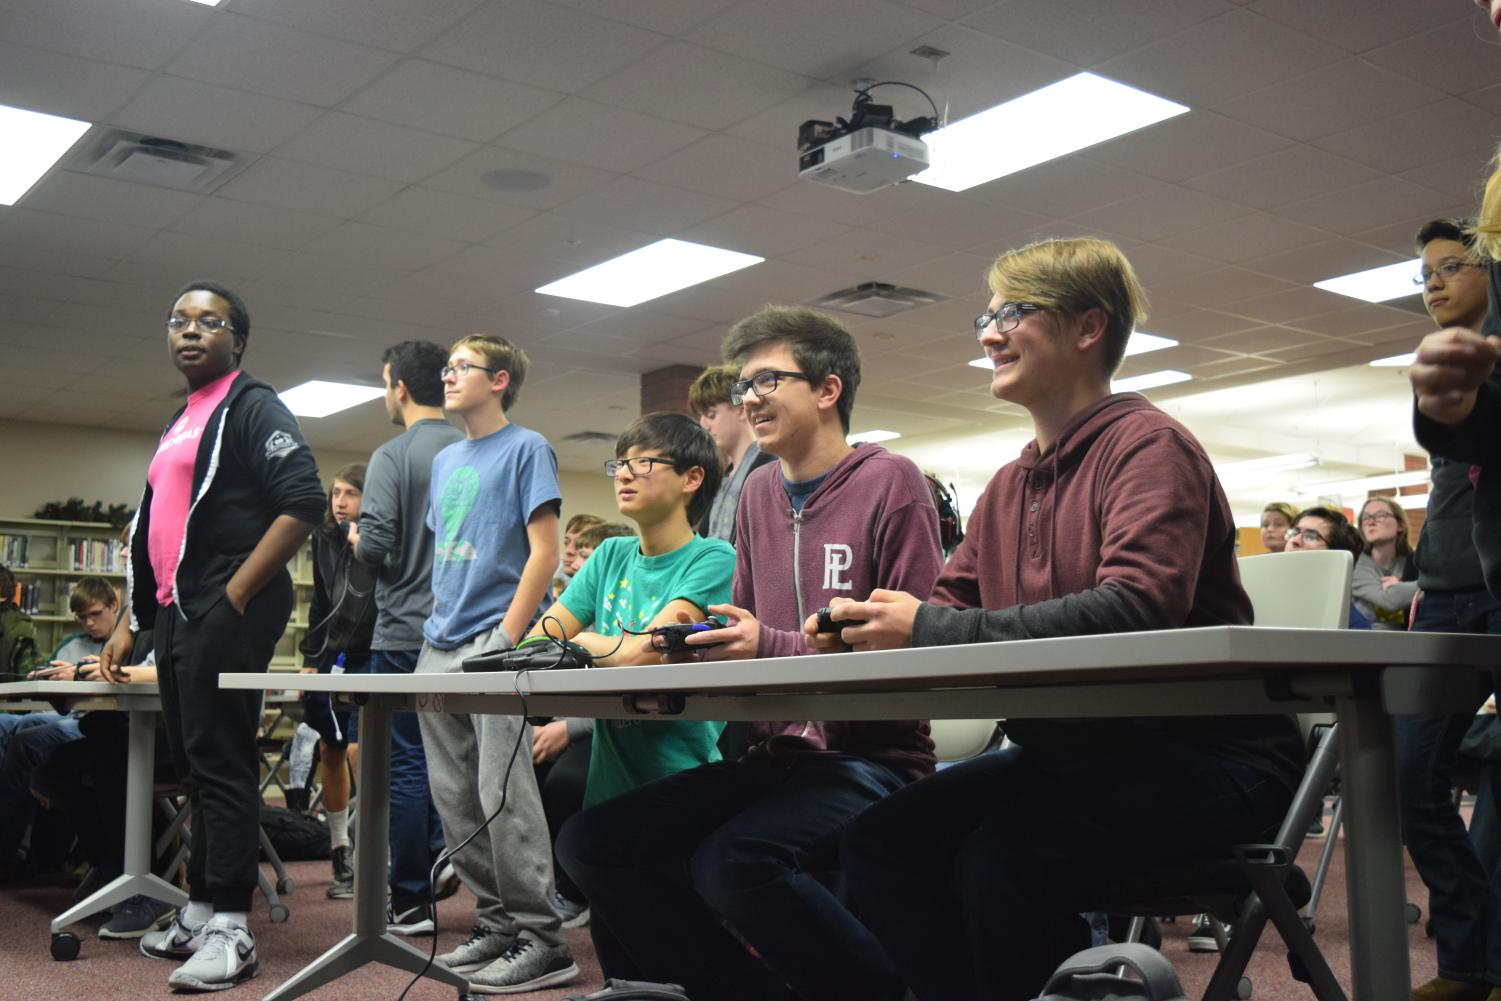 Senior Dylan Rossbach and Sophomore Sebastian MacNabb play a heated battle in the new Smash Bros. game. This was only one of several games that ended in shocked faces and applause.